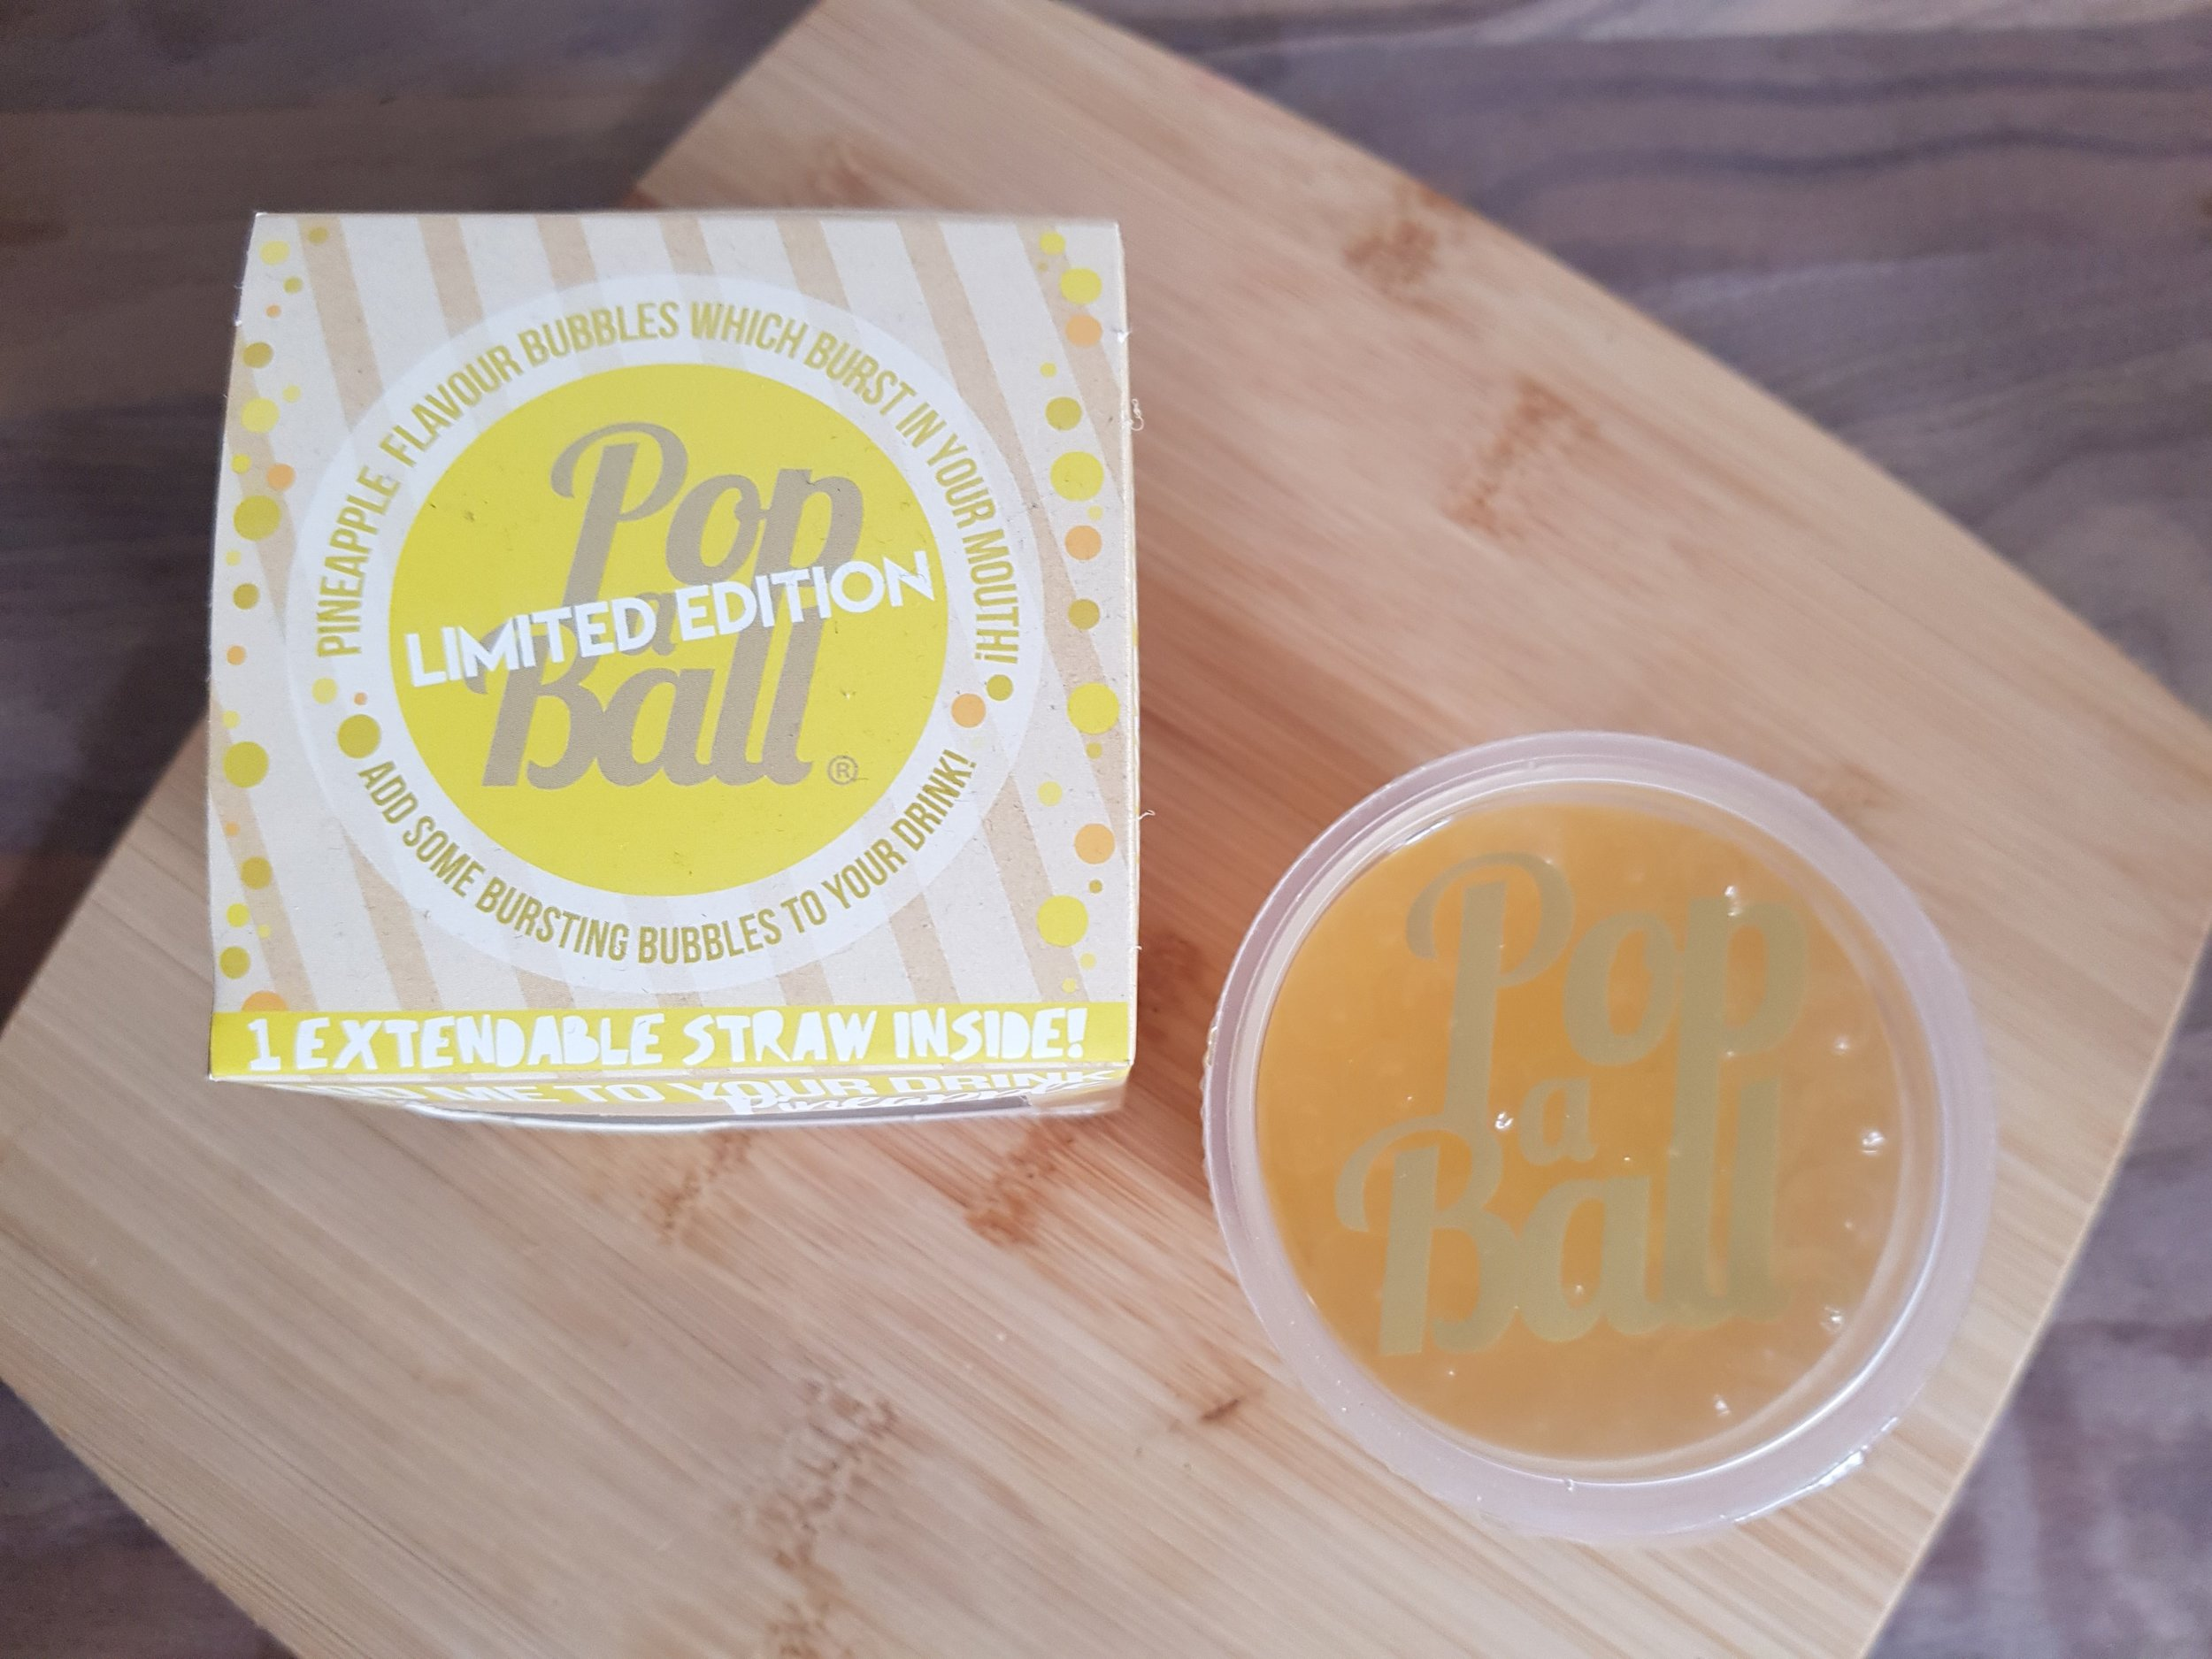 Popaball Limited Edition Pineapple Bursting Bubbles Me Becoming Mum's Christmas Stocking Fillers for Her